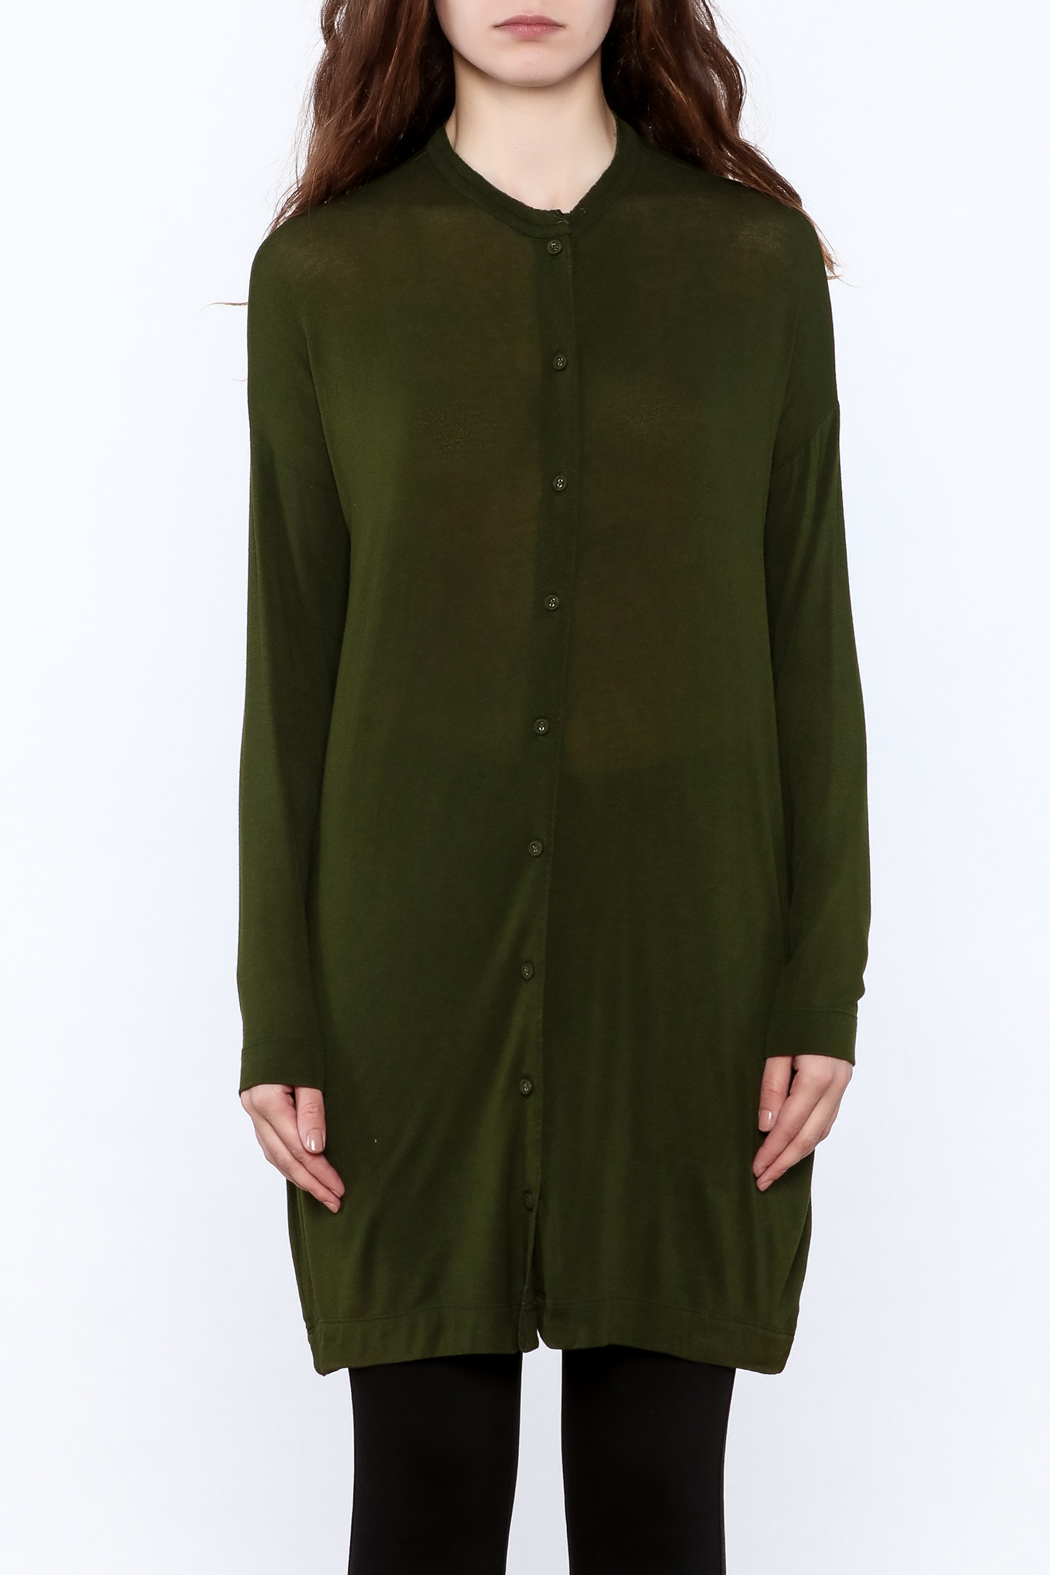 Bia Miro Olive Lightweight Cardigan - Side Cropped Image